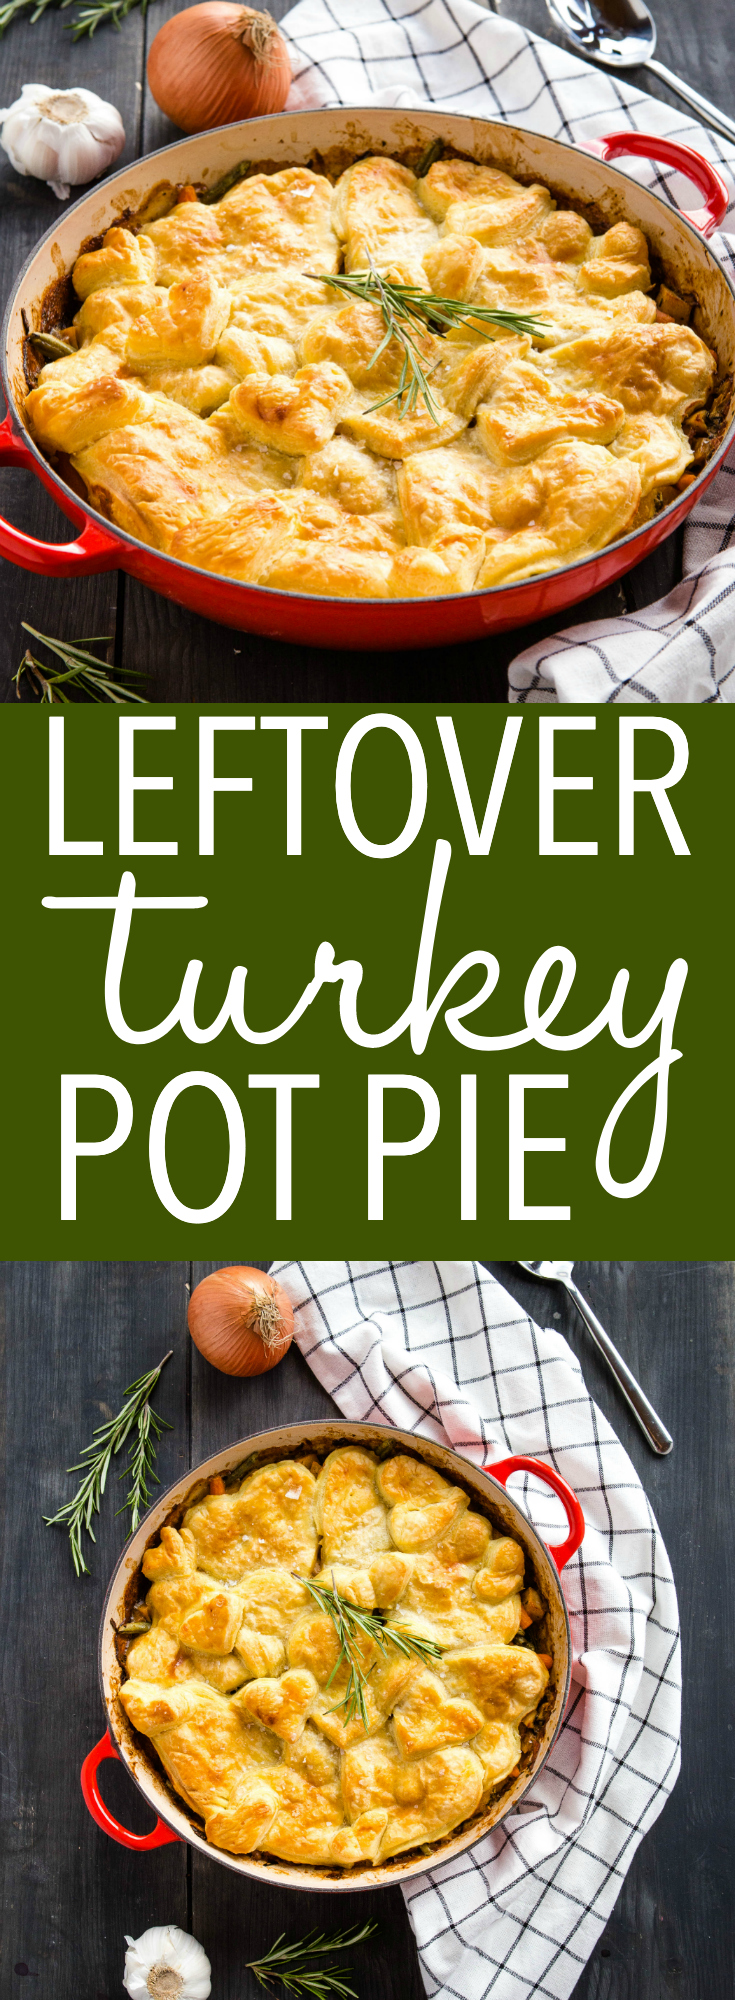 This Leftover Turkey Pot Pie is the perfect easy weeknight meal to make with leftover holiday turkey and frozen veggies! It's a classic comfort food meal that's on the table in 35 minutes or less! Recipe from thebusybaker.ca! #leftovers #turkey #thanksgiving #christmas #holidays #potpie #onepan #potpot #mealidea #mealprep #mealplanning #family via @busybakerblog